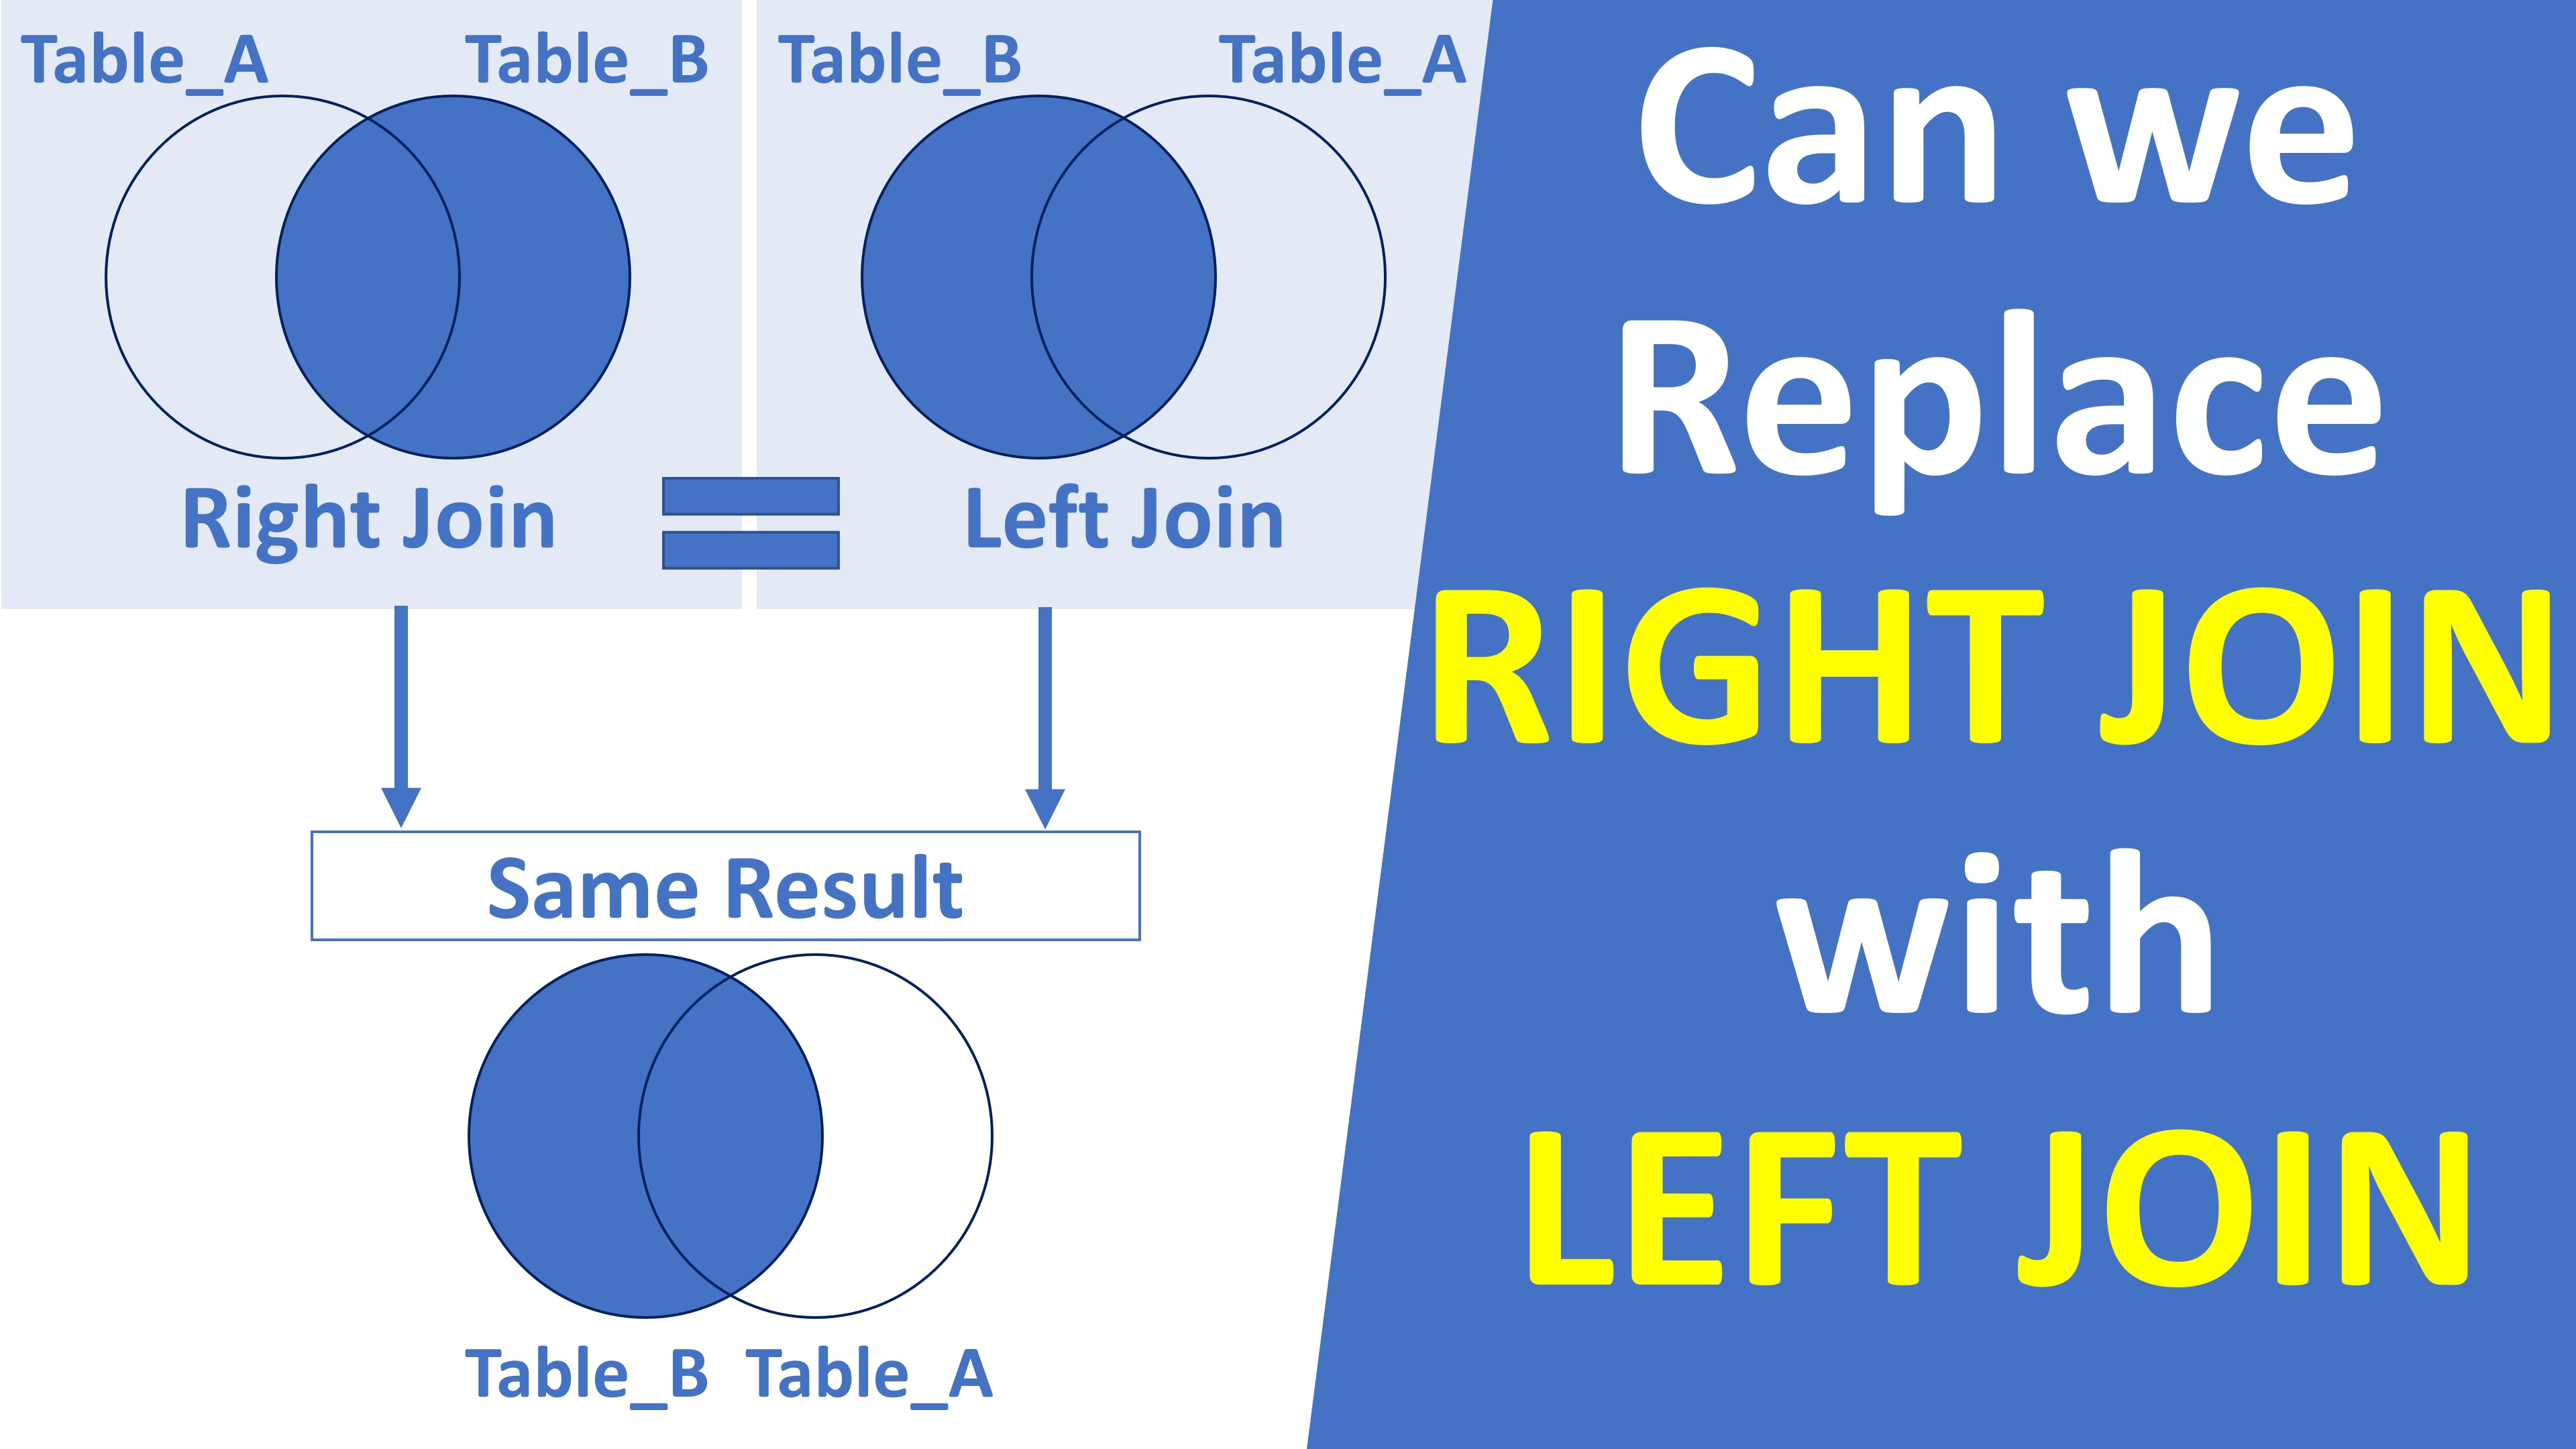 why is right join required when we have left join